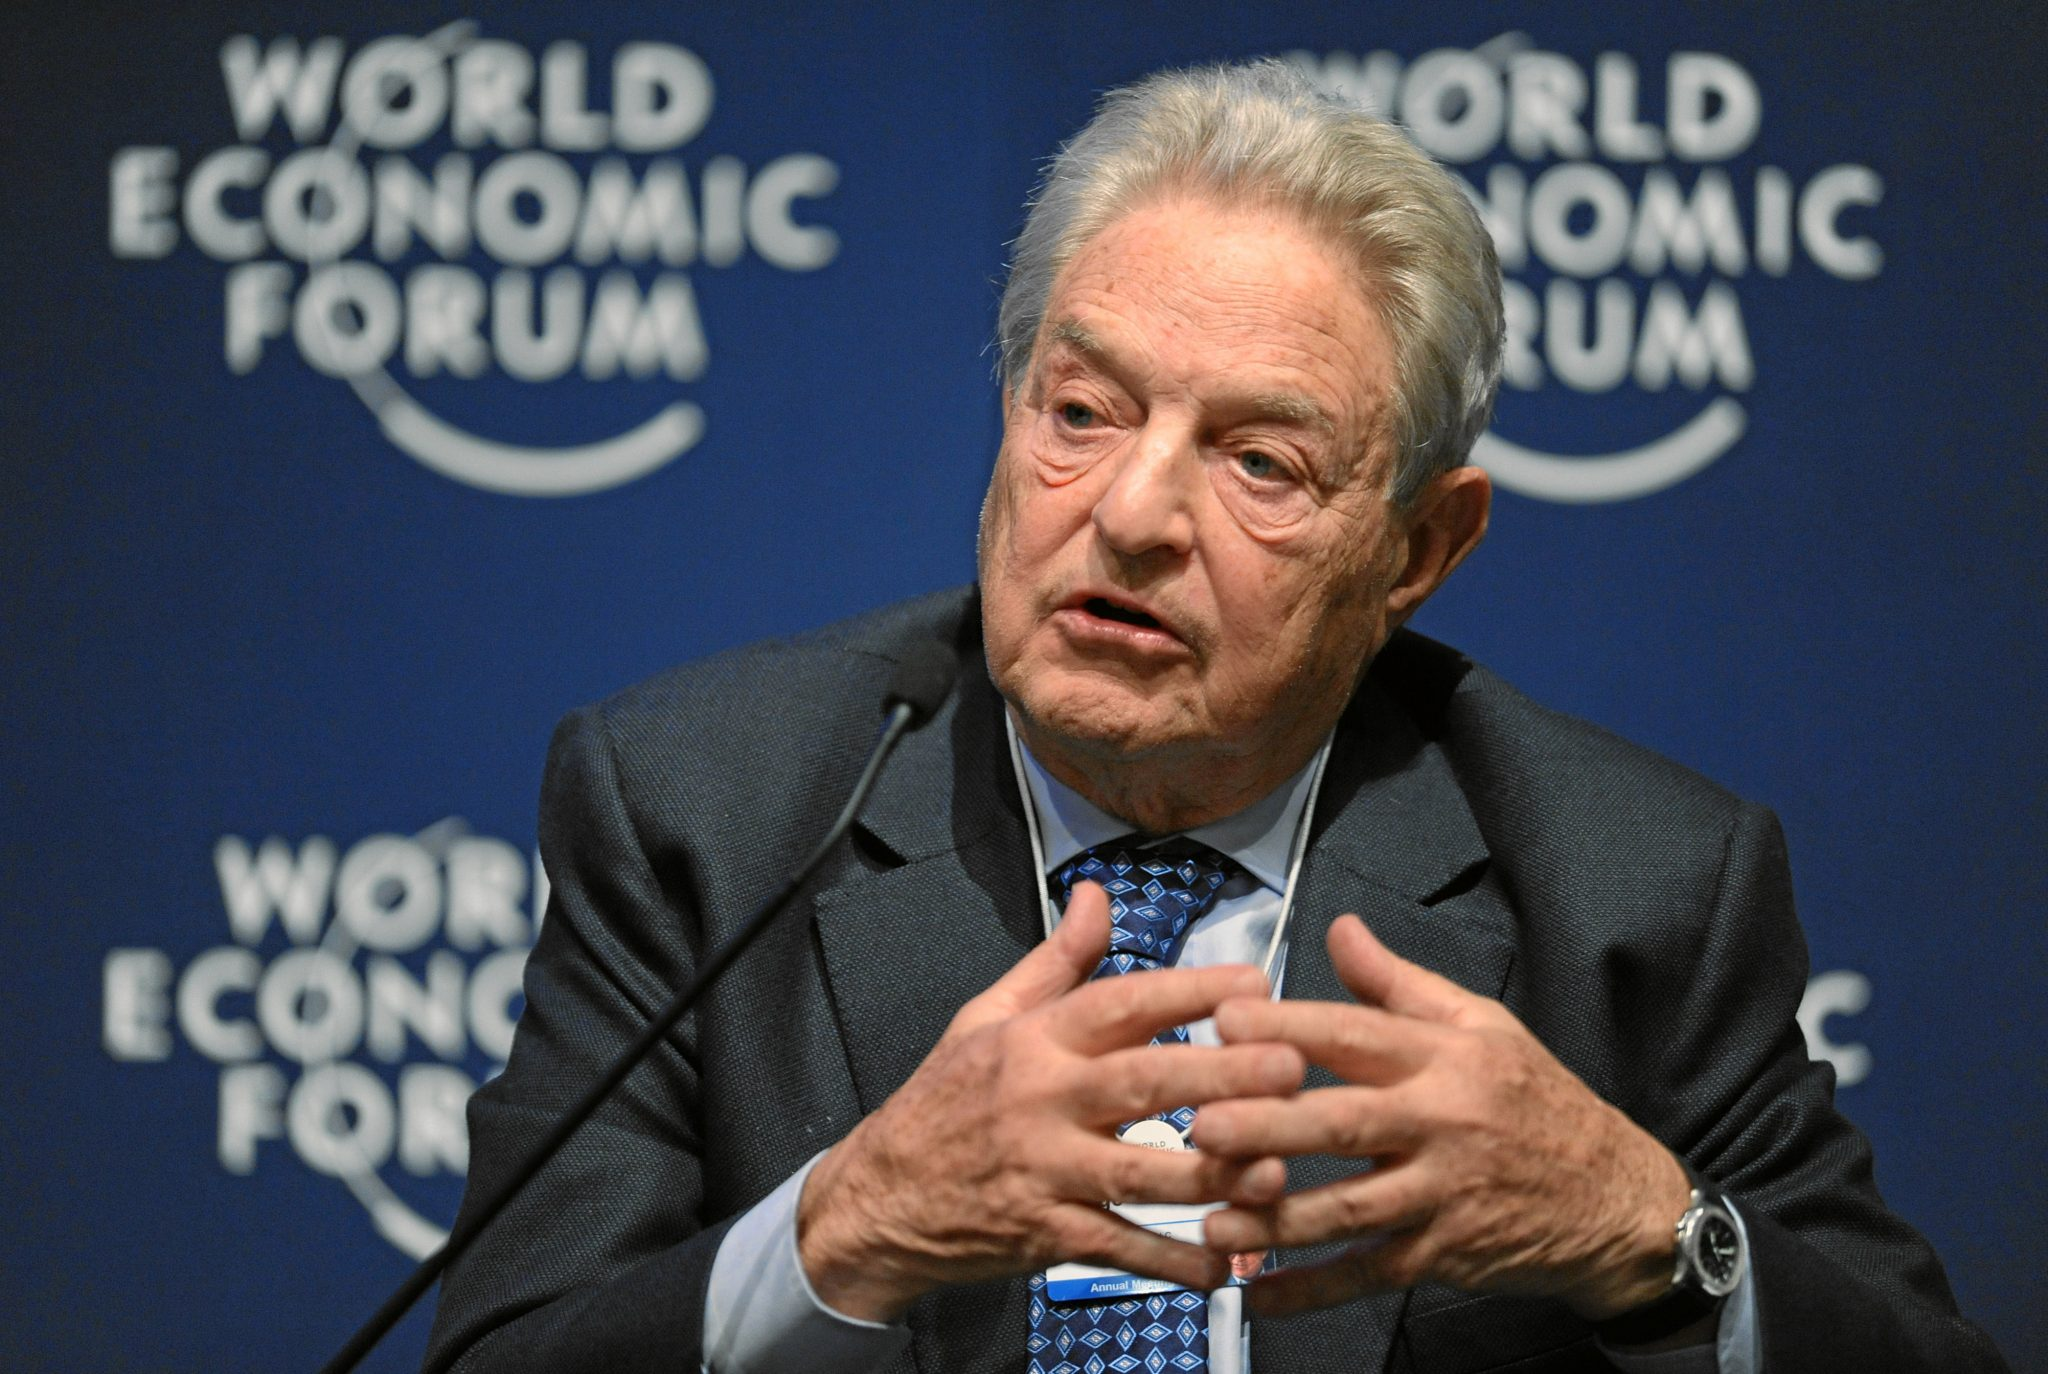 George Soros is 89 years old, but by gosh, before he dies, he's going to see to the internal destruction of America.  At least that's how it seems